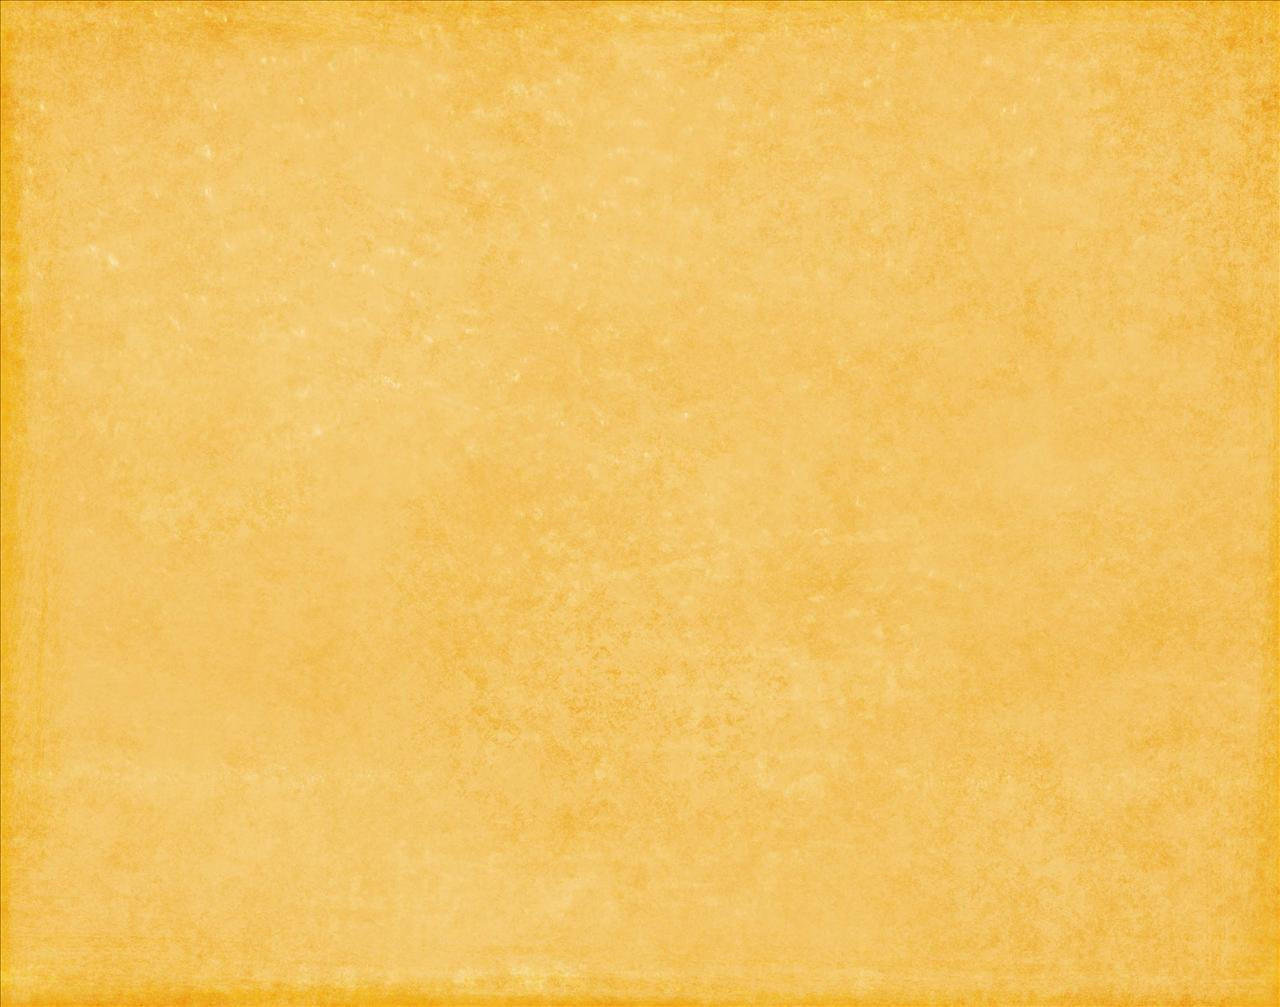 Use this background in your